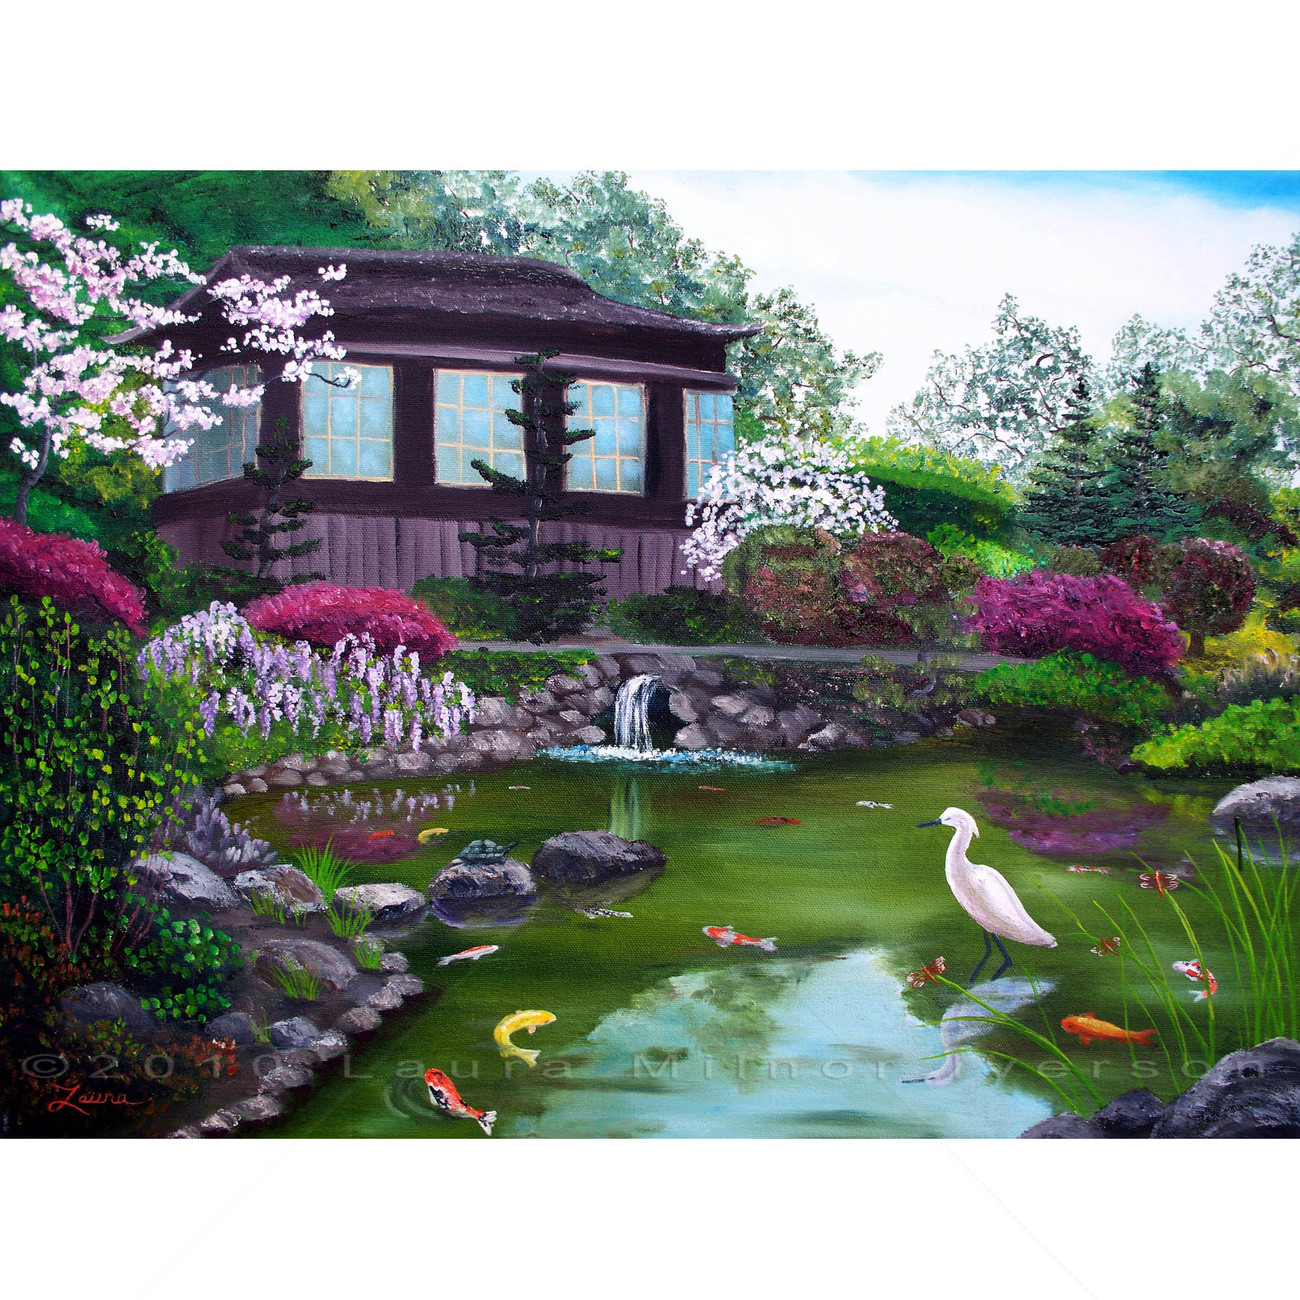 Japanese Koi Pond Teahouse Crane Art Original Oil Painting